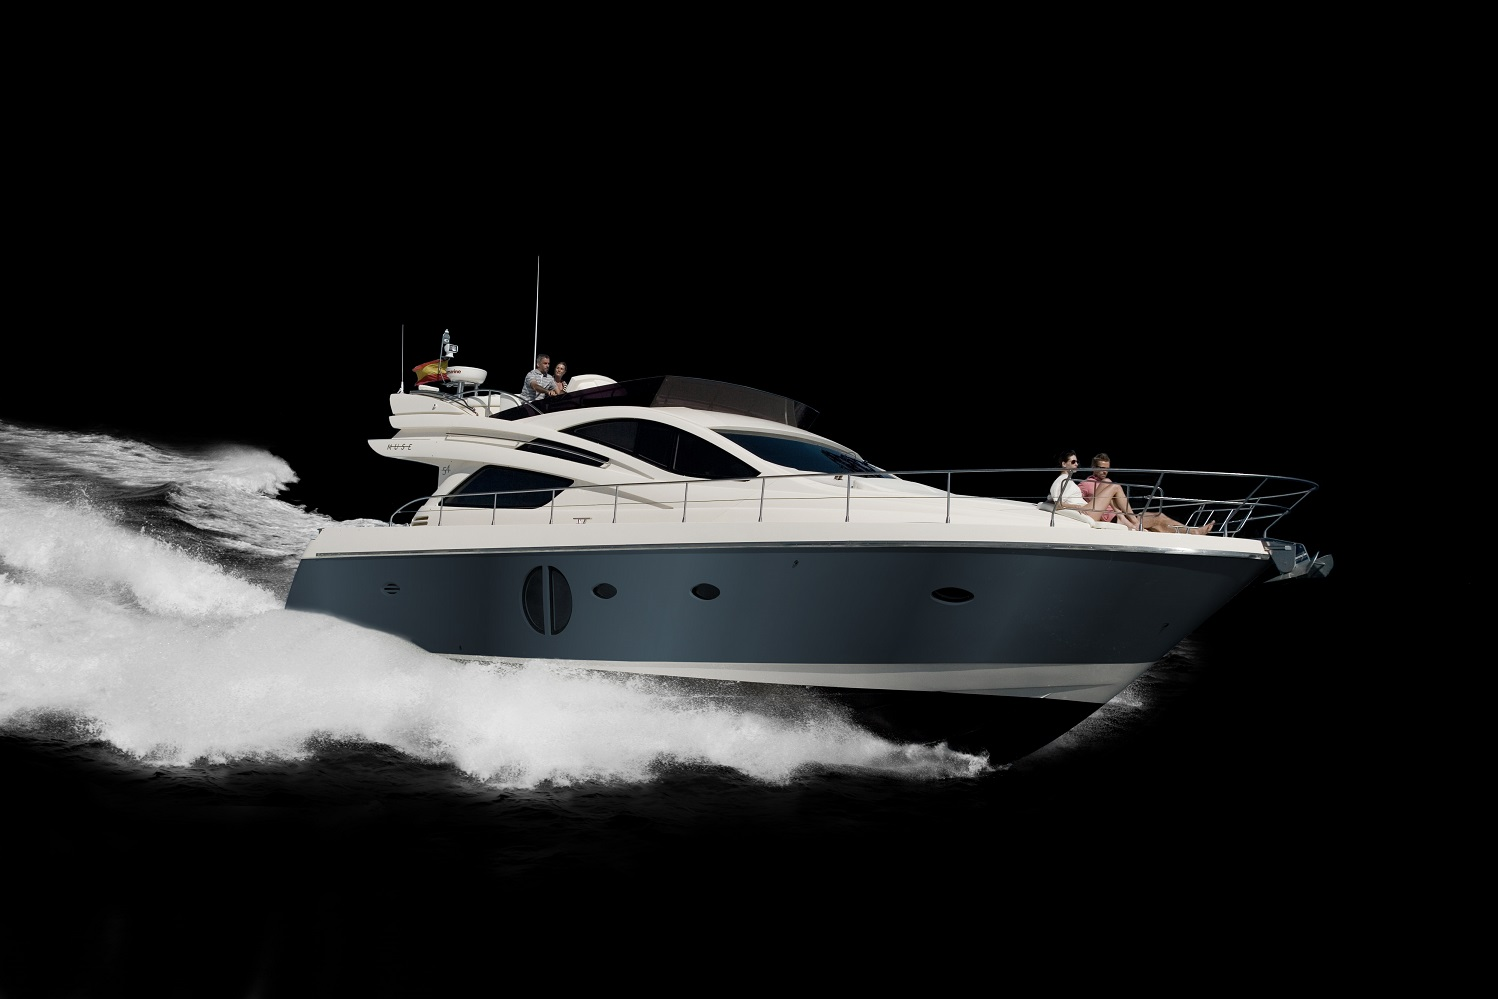 Top 5 new yachts at AdamSea.com